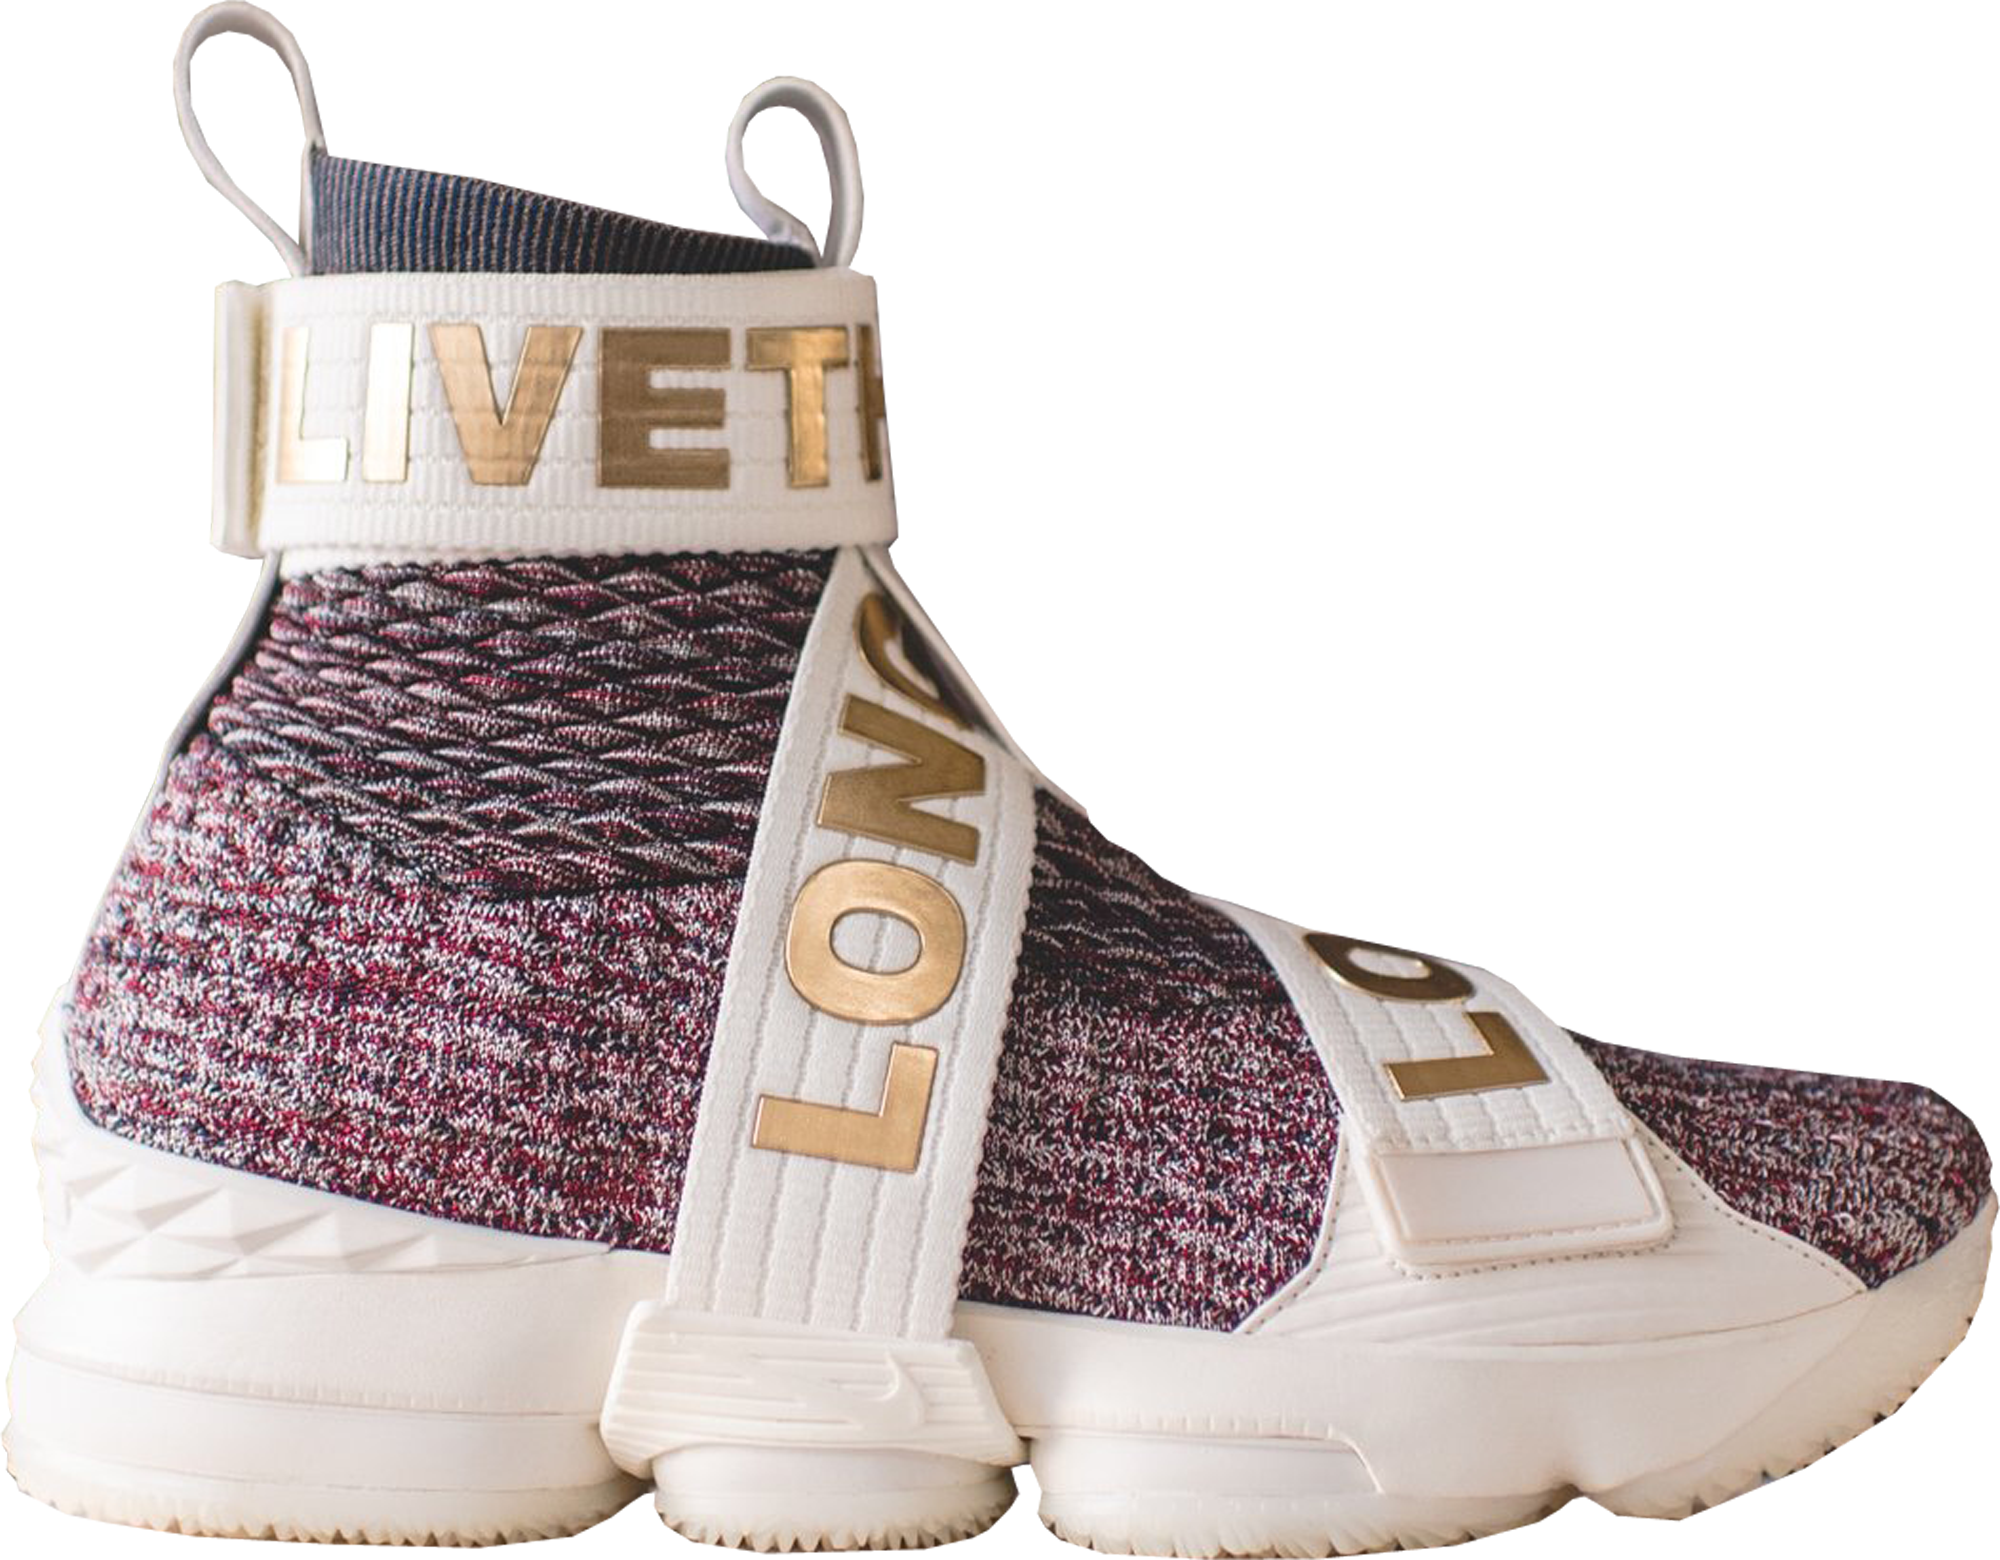 reputable site fe54d cde75 ... mens basketball shoes rust pink metallic 1f259 ad228  best price lebron  15 lifestyle kith stained glass 1d7cb 37e85